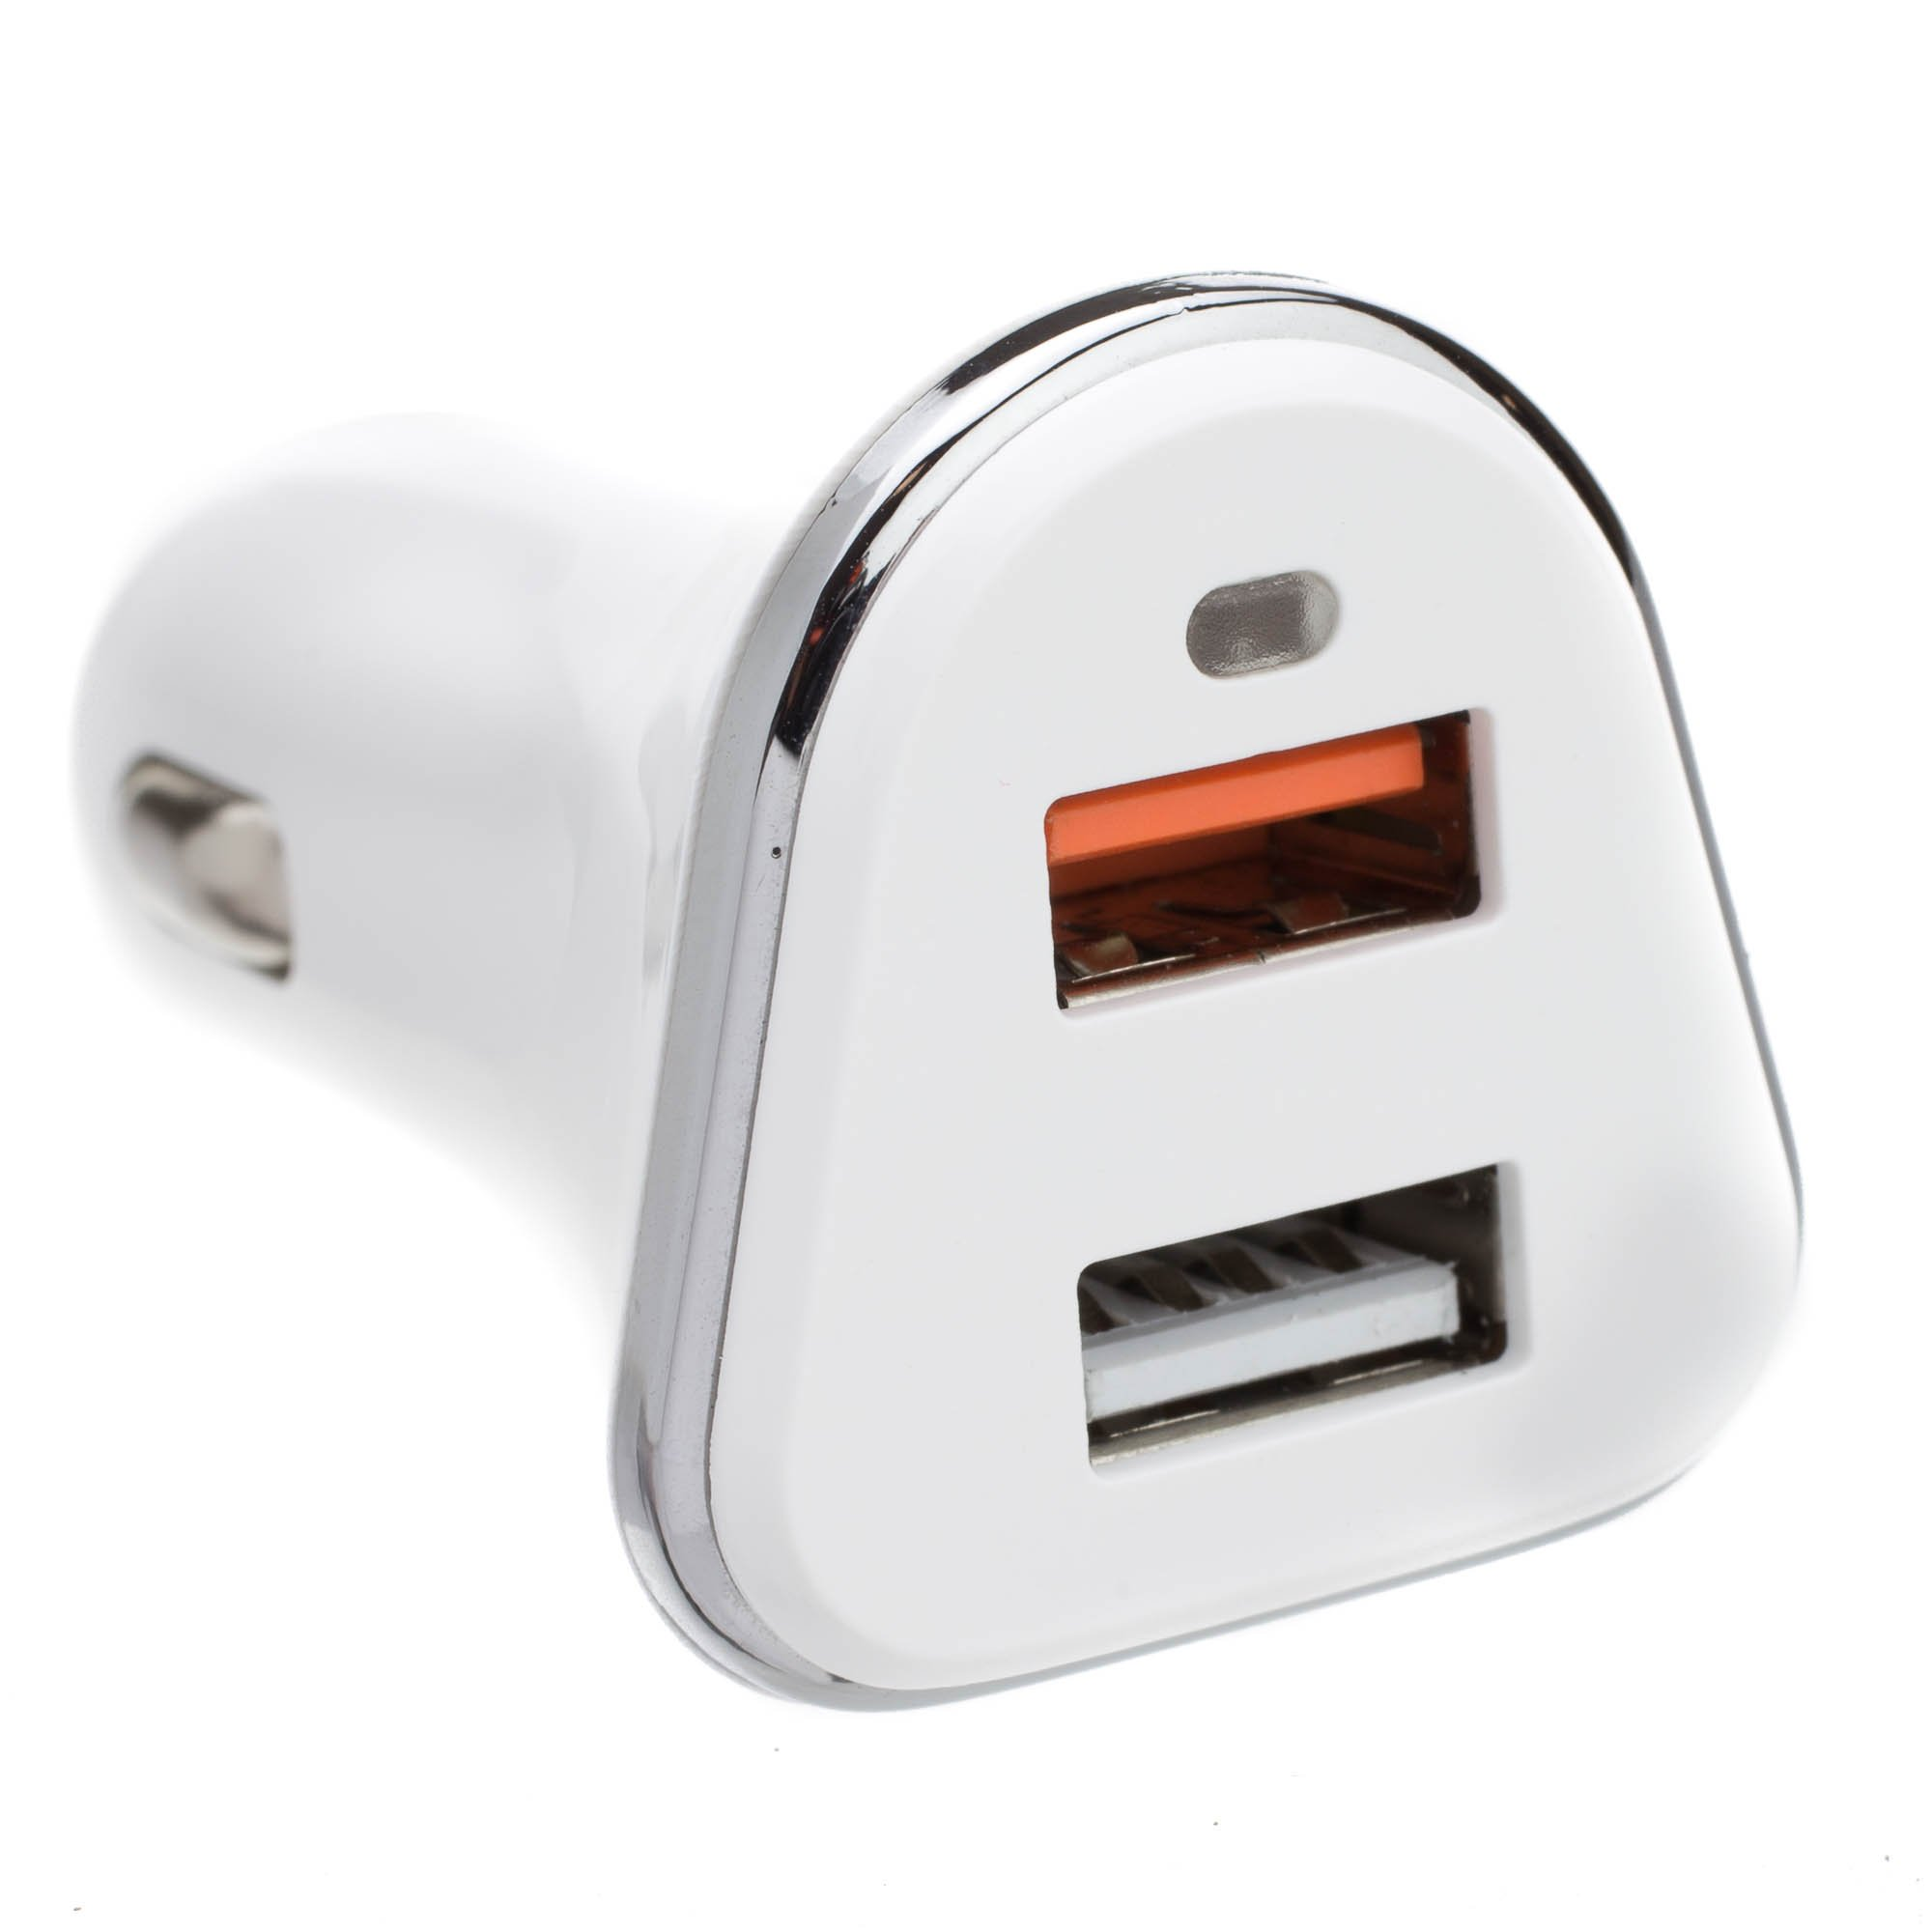 ACL 2 Port USB Car Charger, 2 x USB A, 5V 3A, Cigarette Lighter Plug, features Quick Charge v3.0, 5 Pack